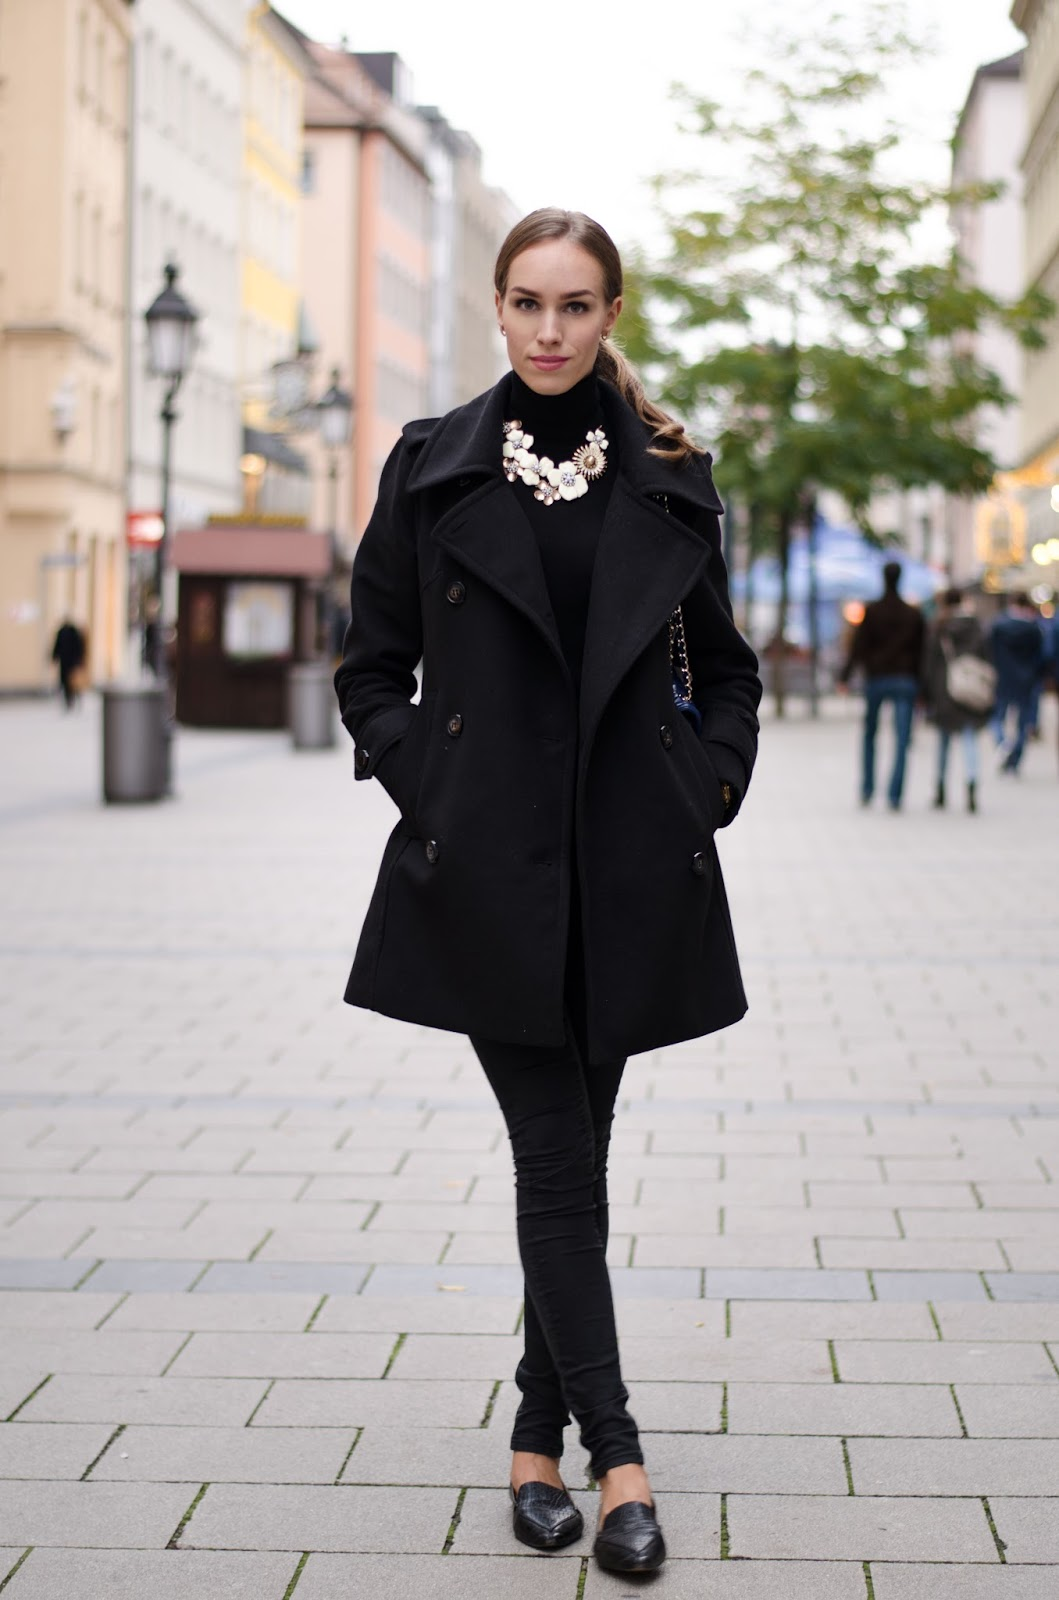 kristjaana mere black fall outfit pea coat jumper jeans flats statement necklace